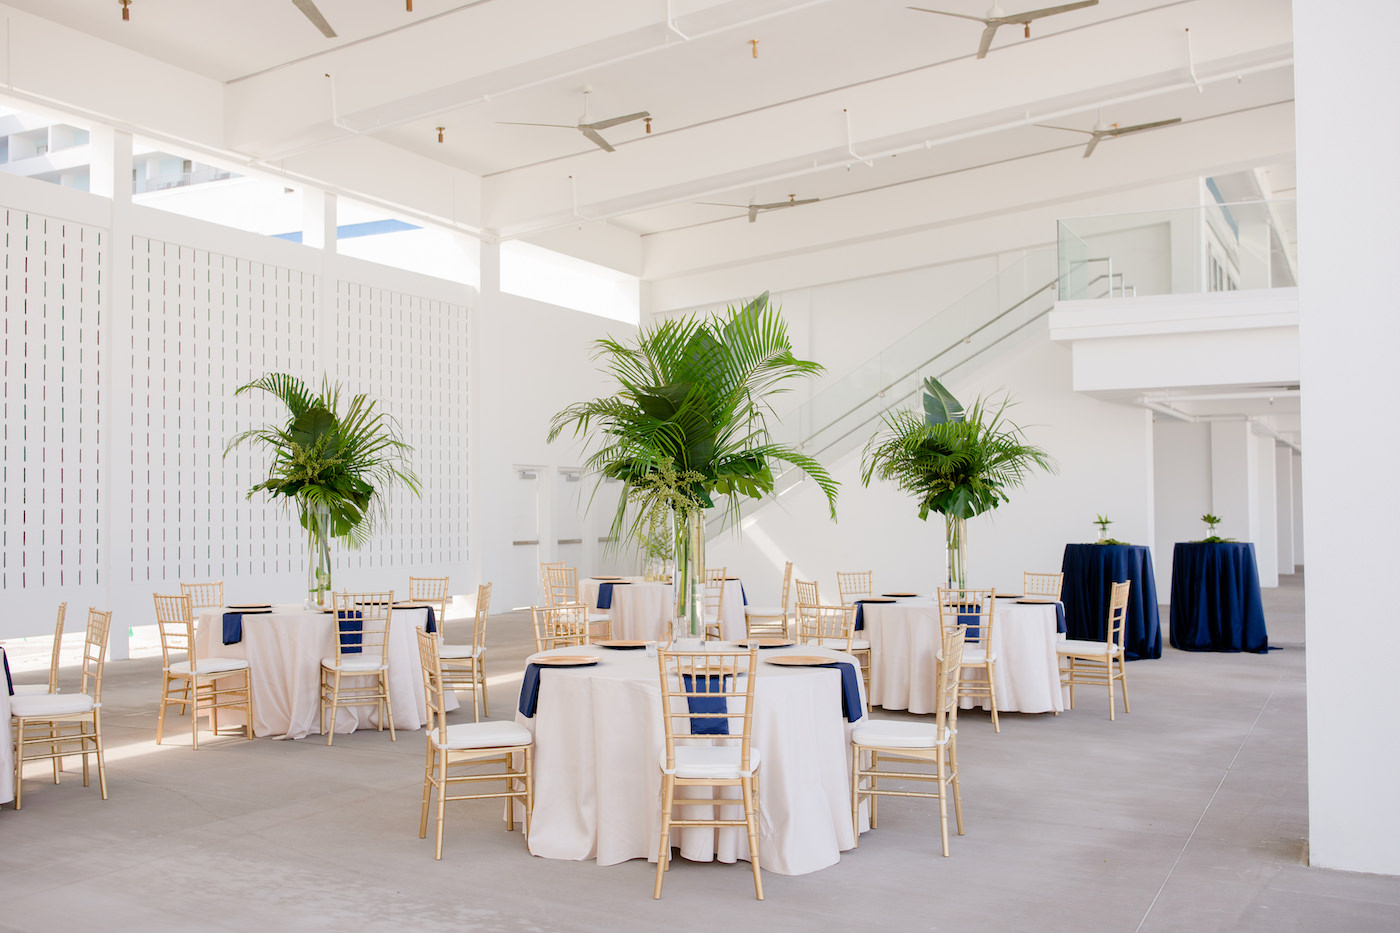 Clearwater Beach Wedding Venue Hilton Clearwater Beach   Modern Tropical Beach Outdoor Wedding Reception Terrace with White Table Linens and Navy Napkins under Gold Charger Plates   Gold Chiavari Chairs and Champagne Sash Bows and Tropical Palm Frond Leaf Floral Arrangement Centerpieces